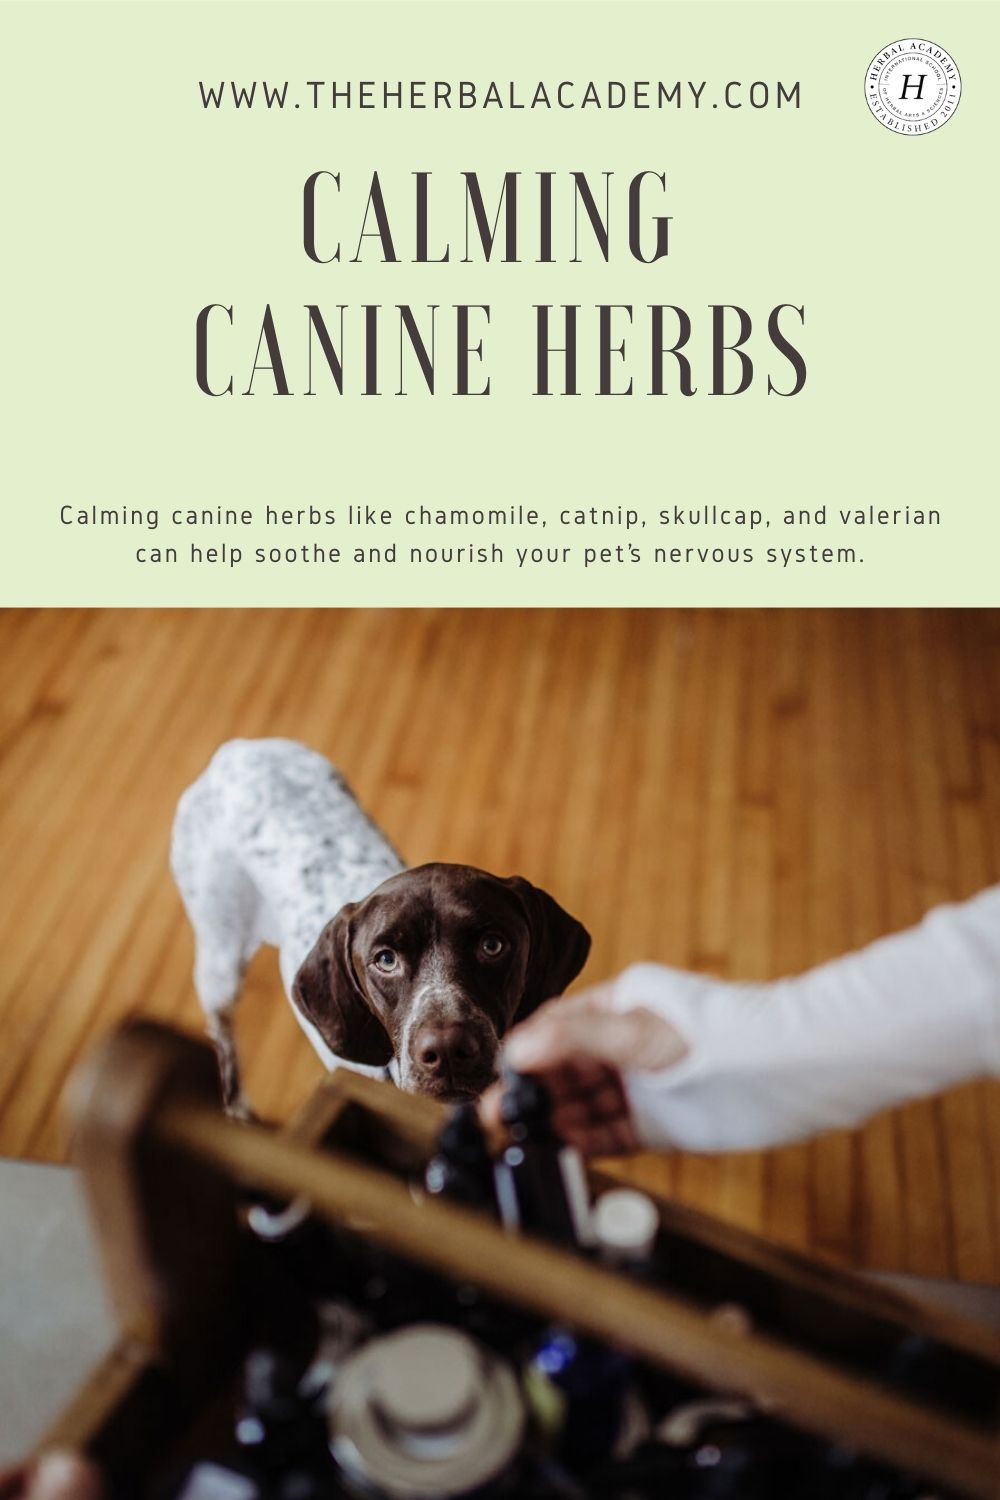 Calming Canine Herbs for Your Four-Legged Friends | The Herbal Academy | Calming canine herbs like chamomile, catnip, skullcap, and valerian can help soothe and nourish your pet's nervous system.